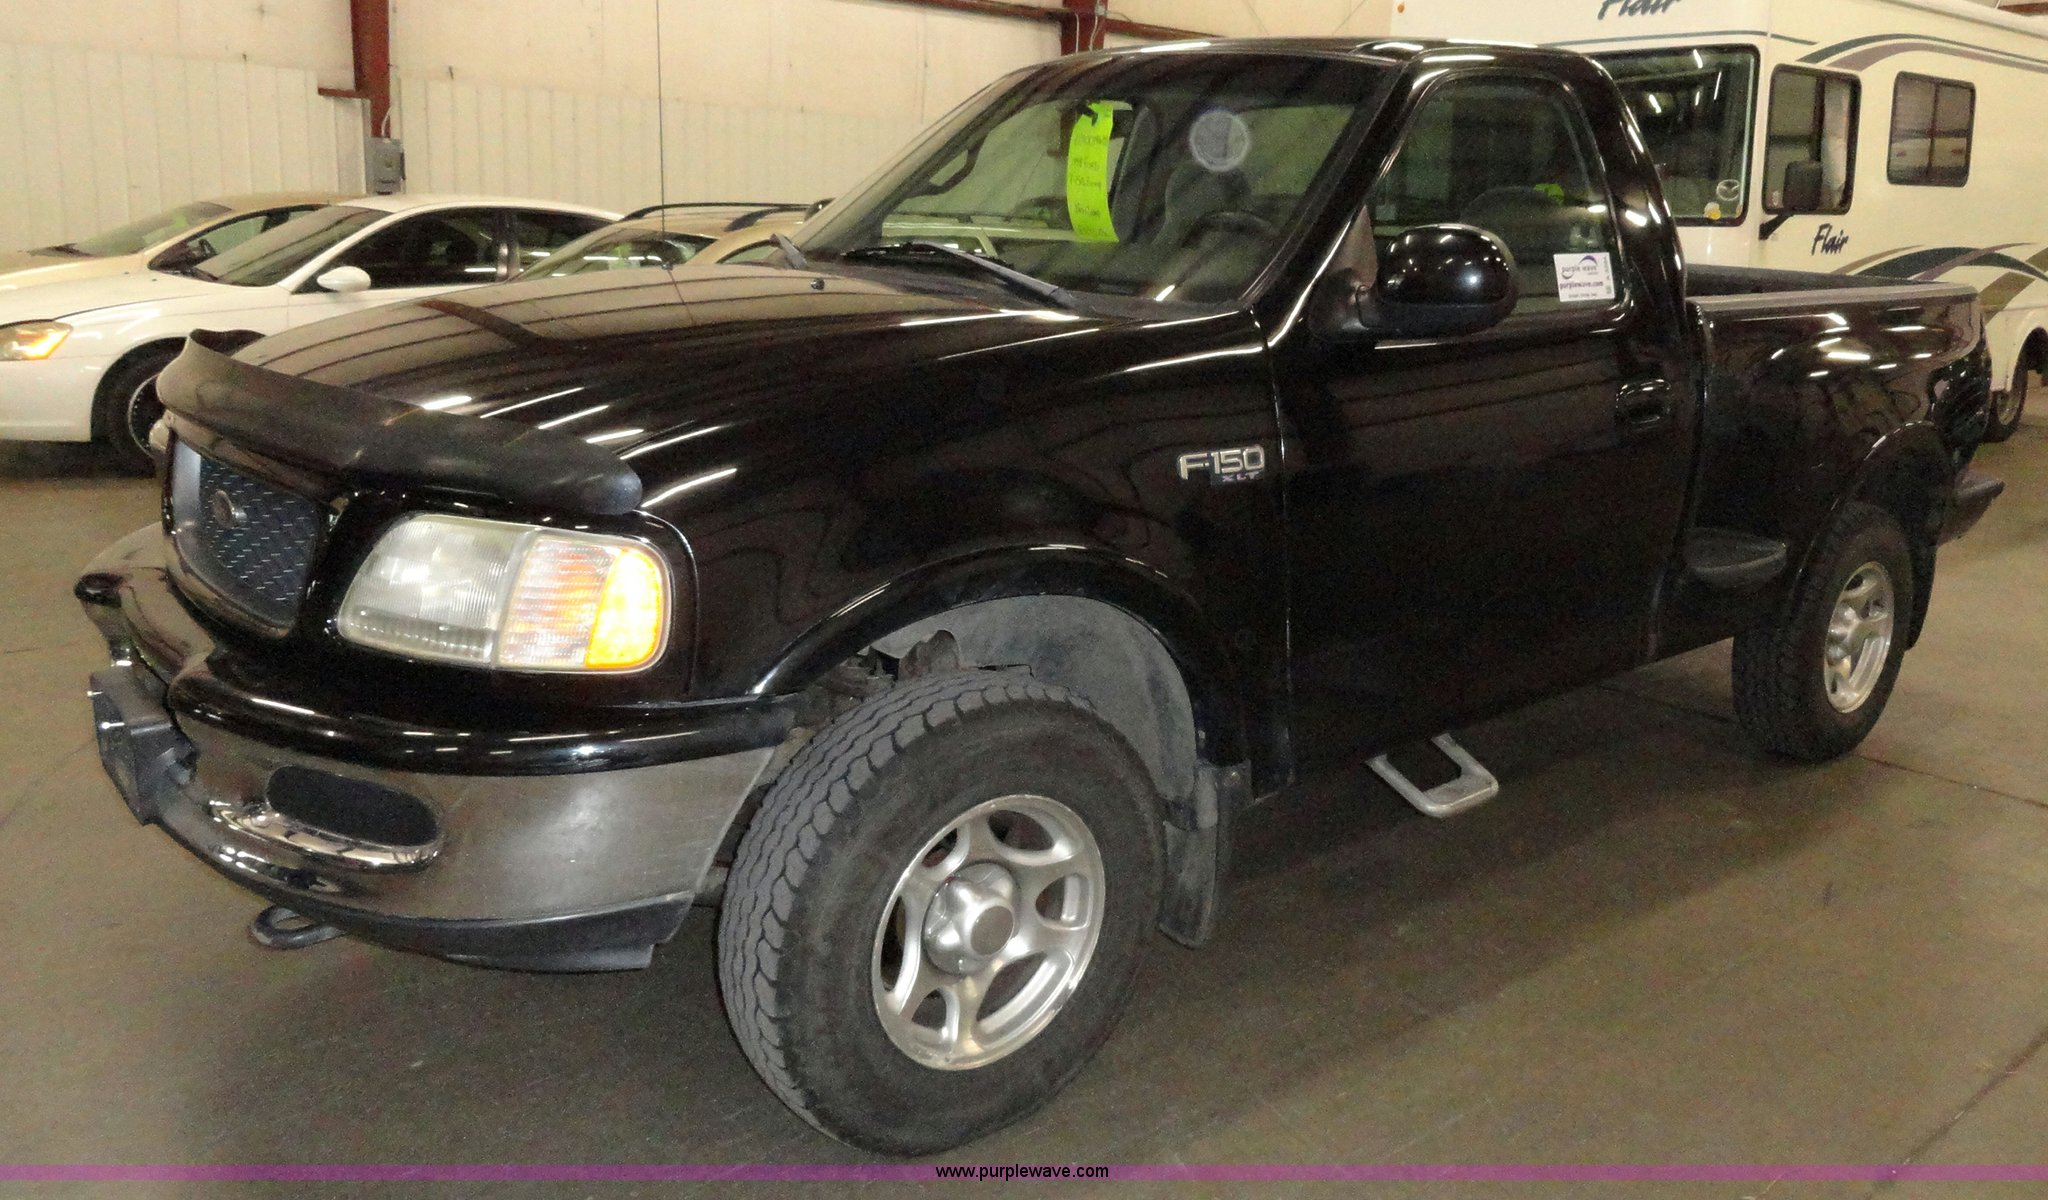 1998 Ford F150 Xlt Step Side Pickup Truck In Topeka Ks Item A3204 Sold Purple Wave